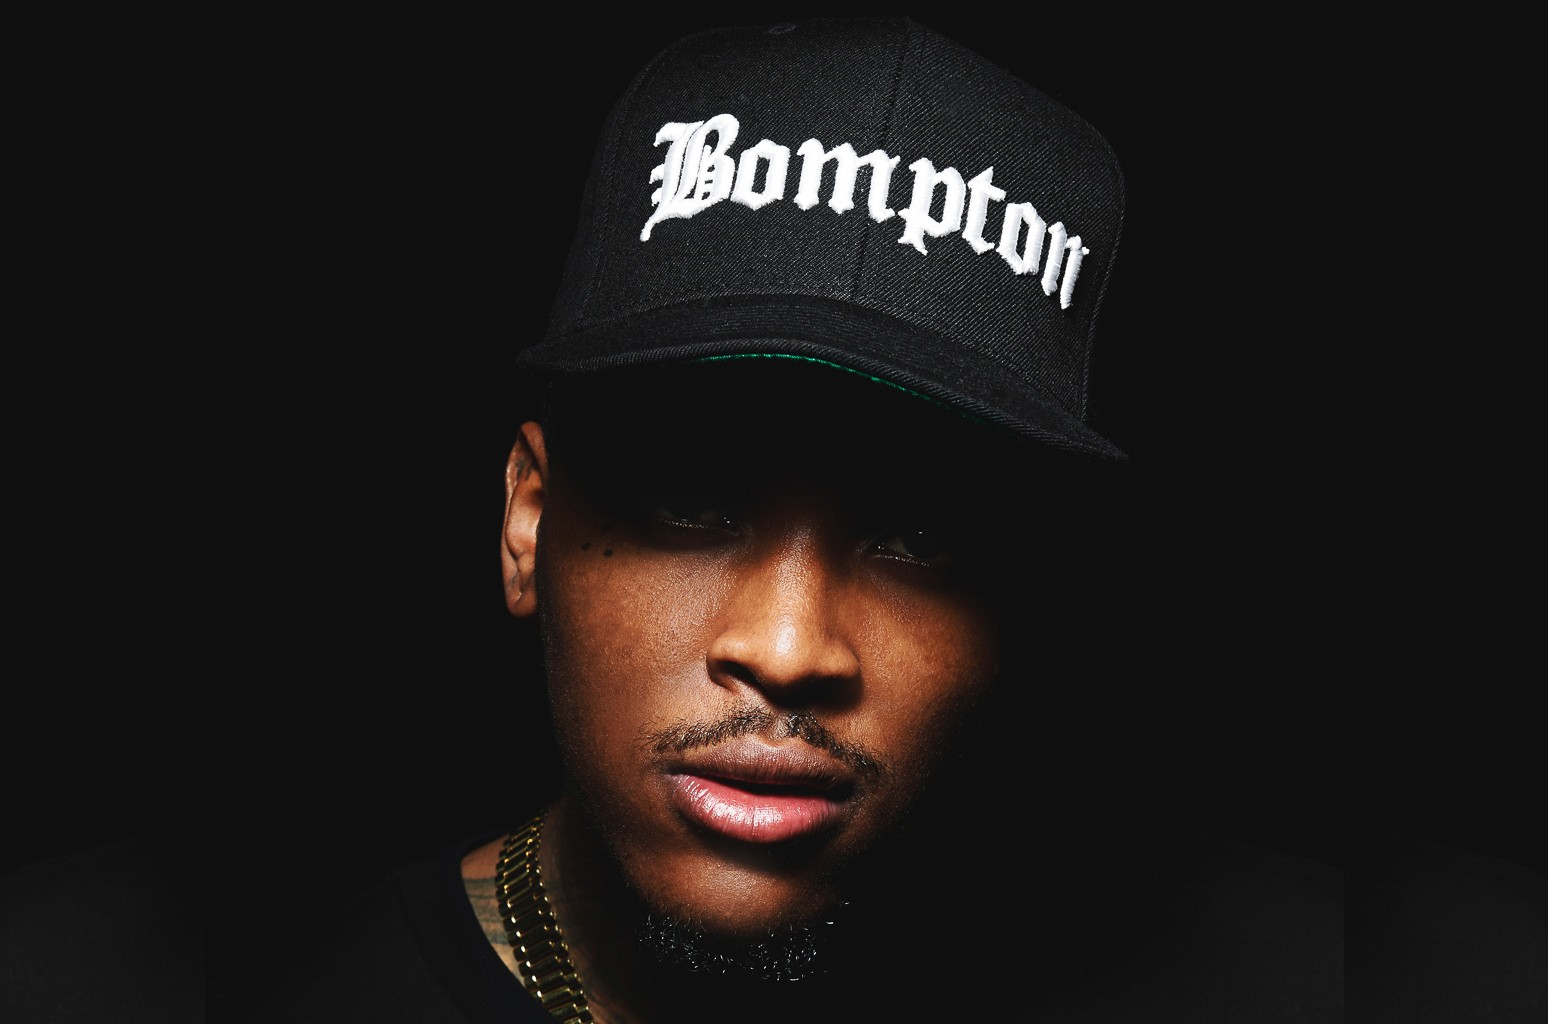 YG Announces Project with Nipsey Hussle